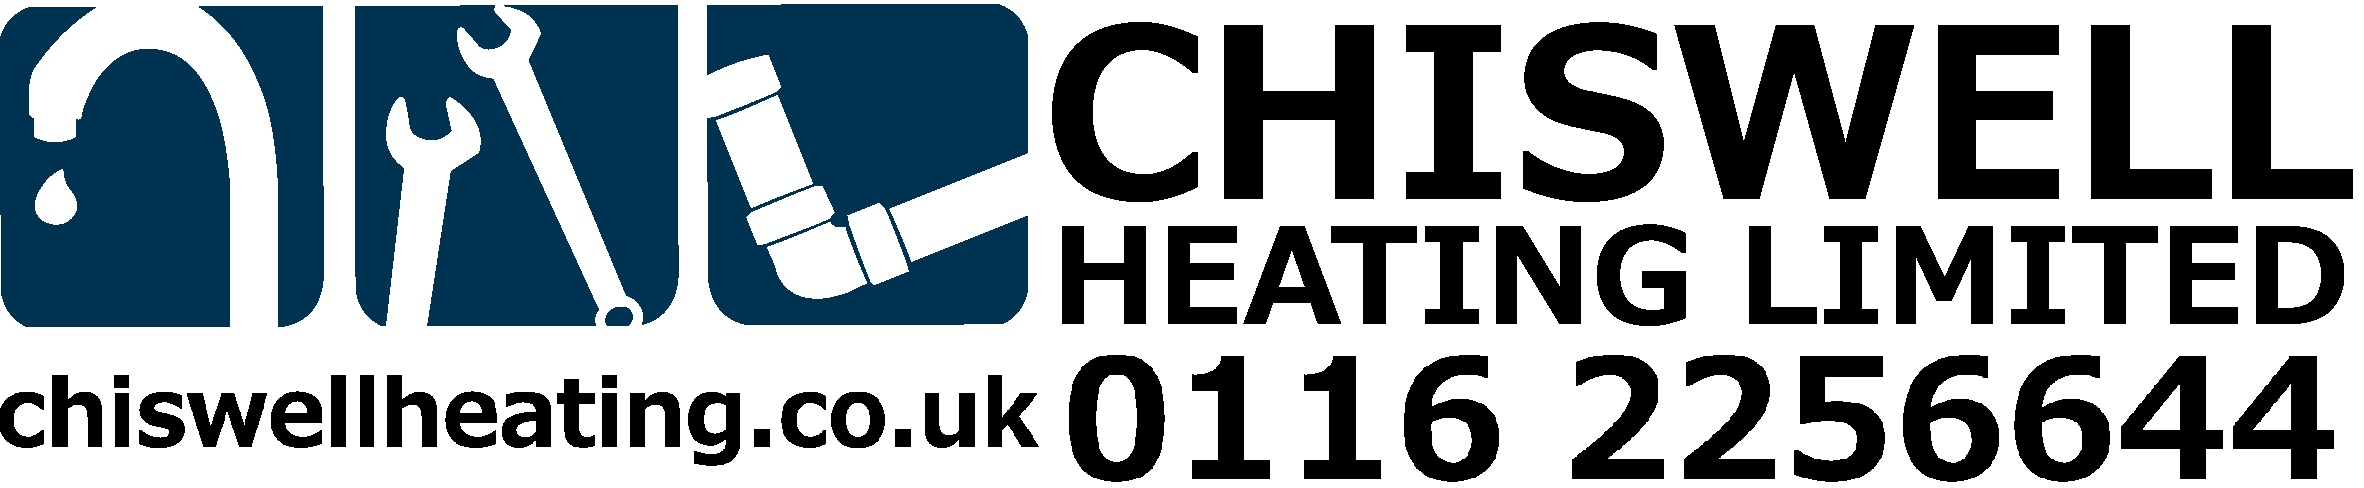 photo of Chiswell Heating Limited